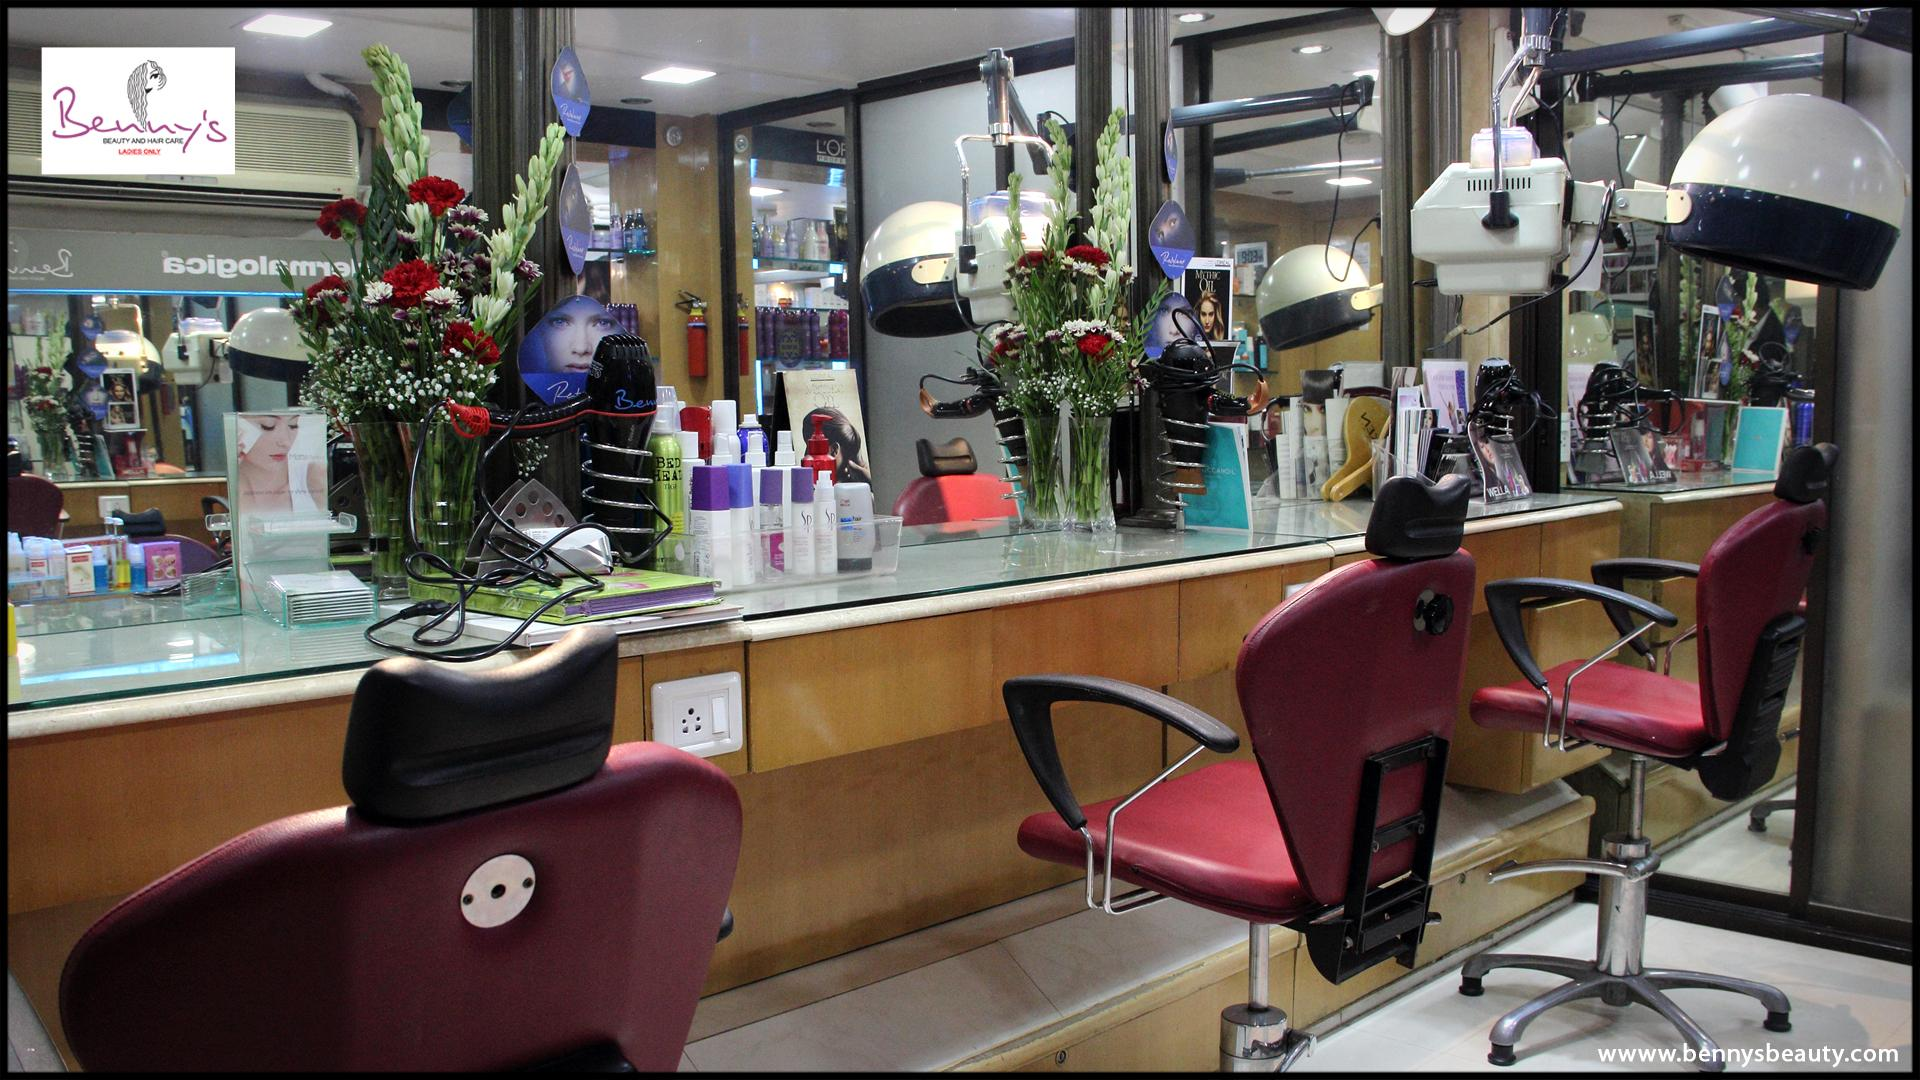 Bennys-Beauty-Salon---86